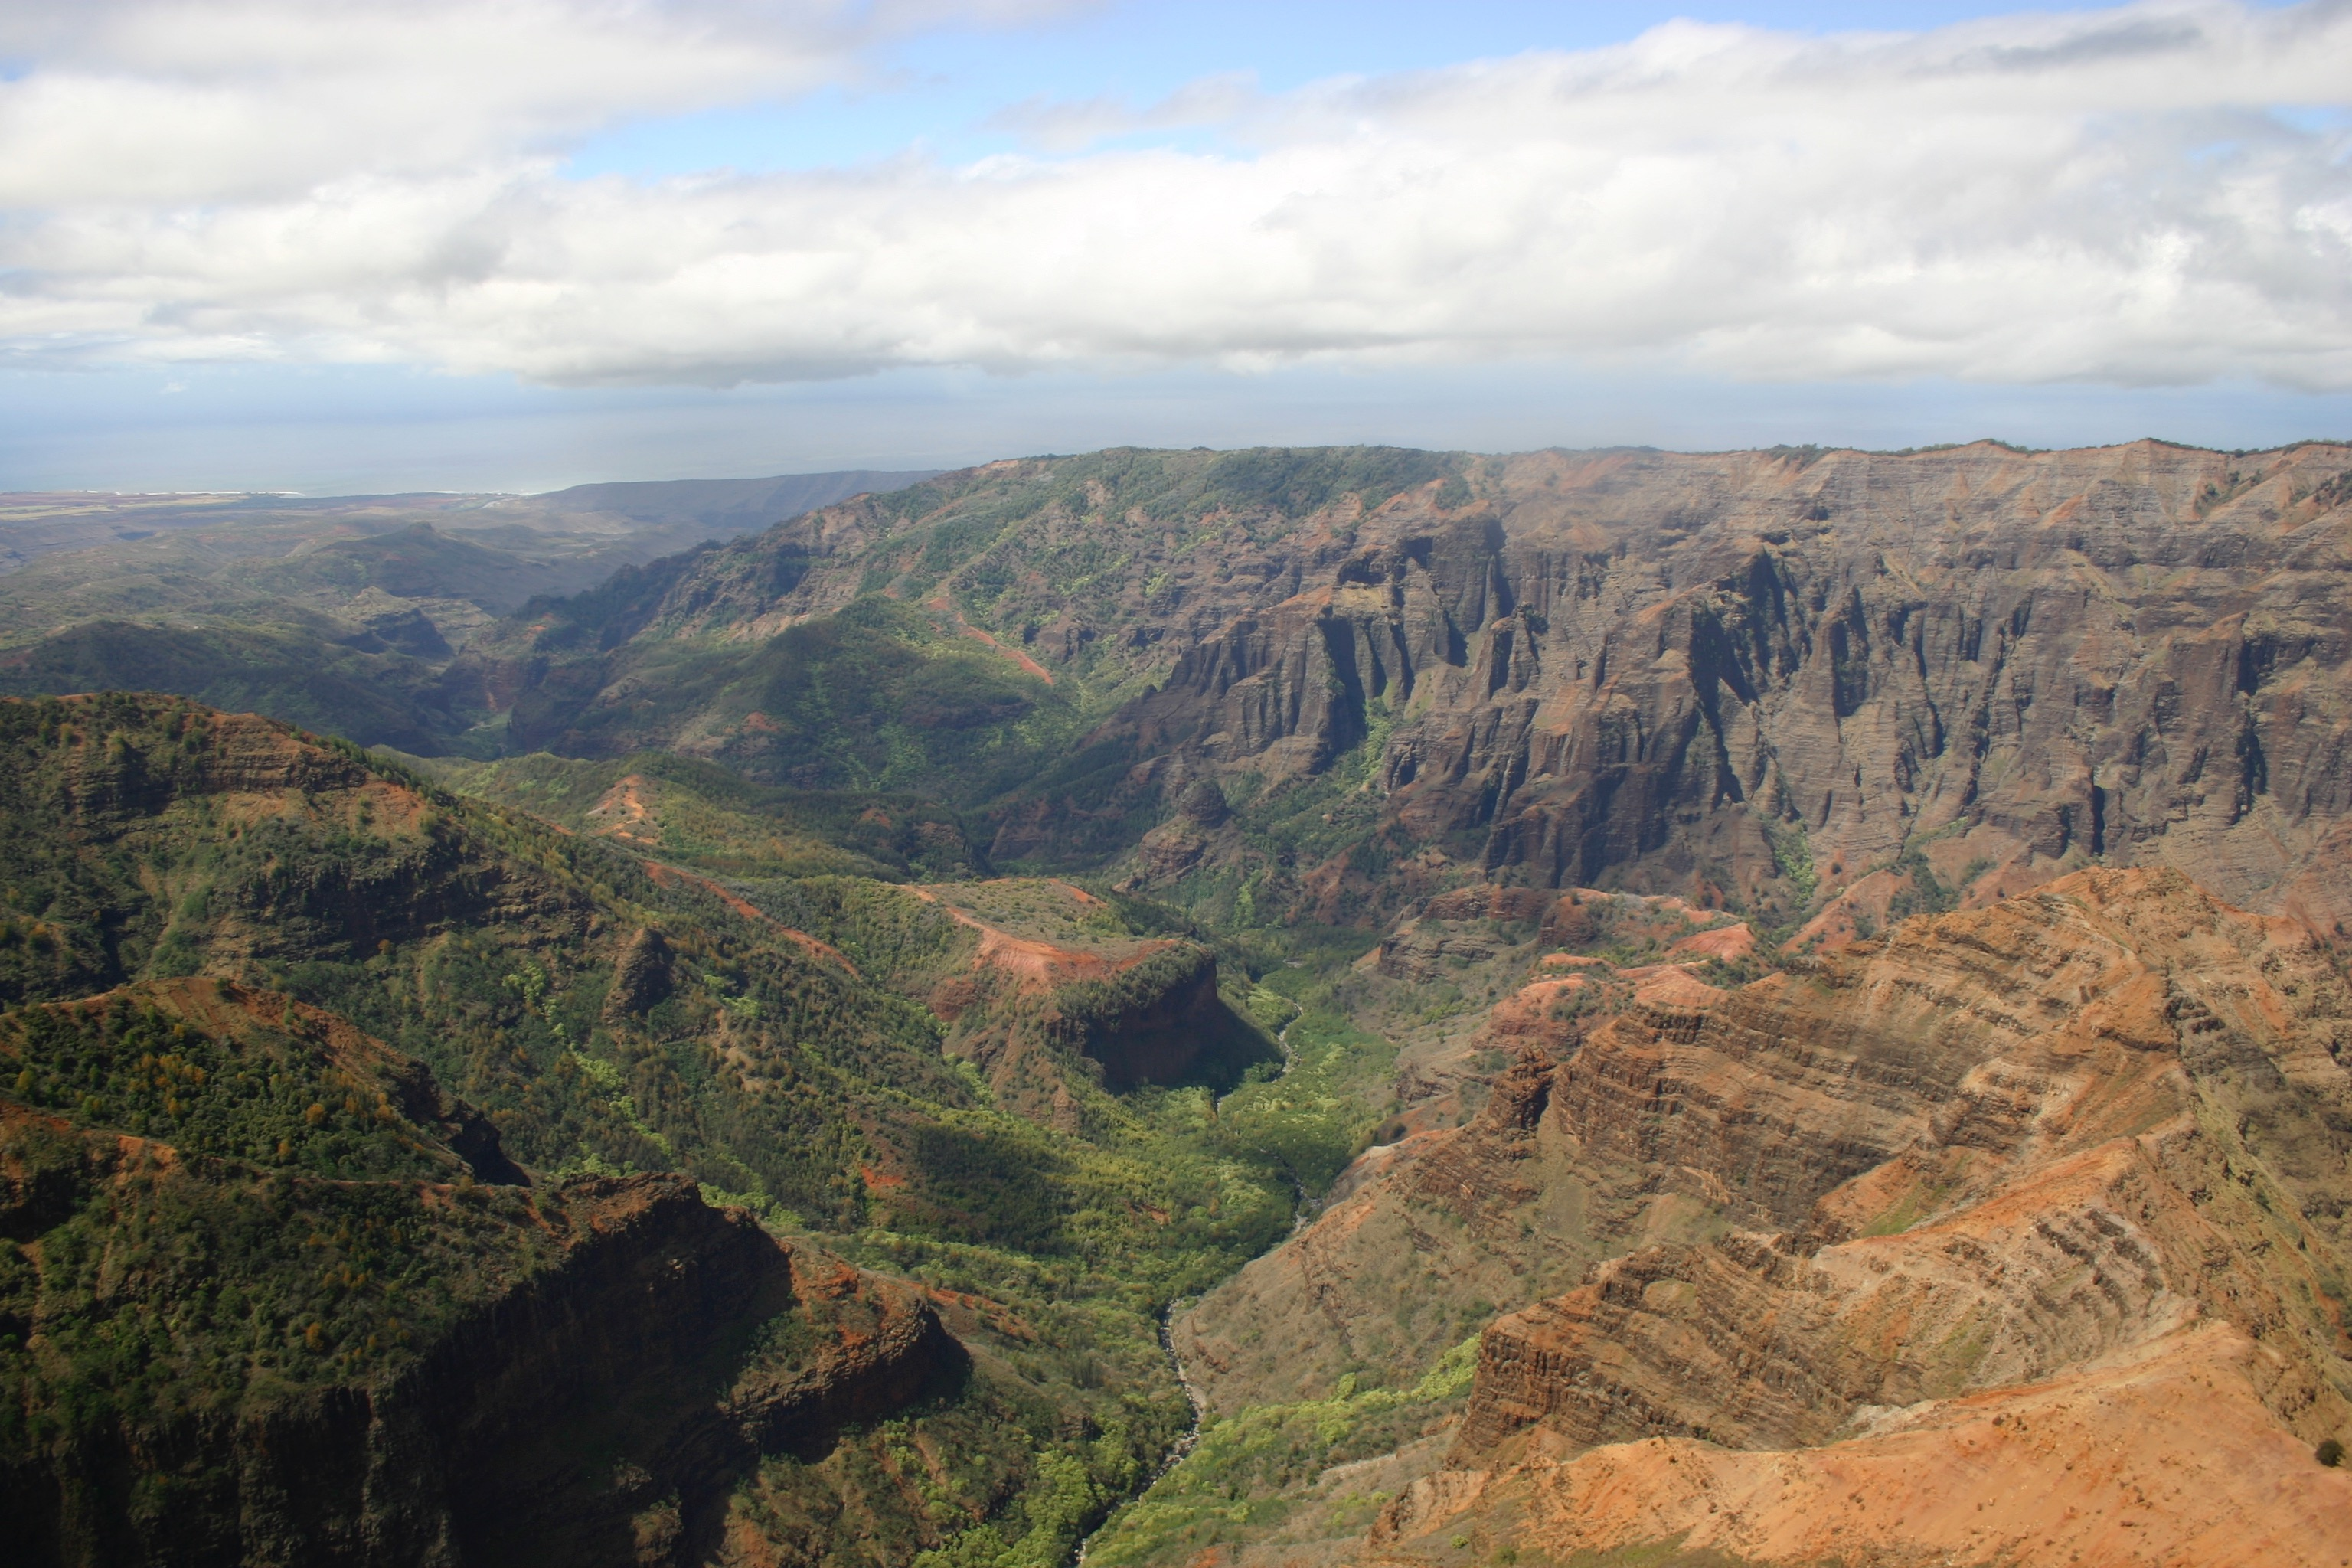 Waimea Canyon, also known as the Grand Canyon of the Pacific, seen from a helicopter.